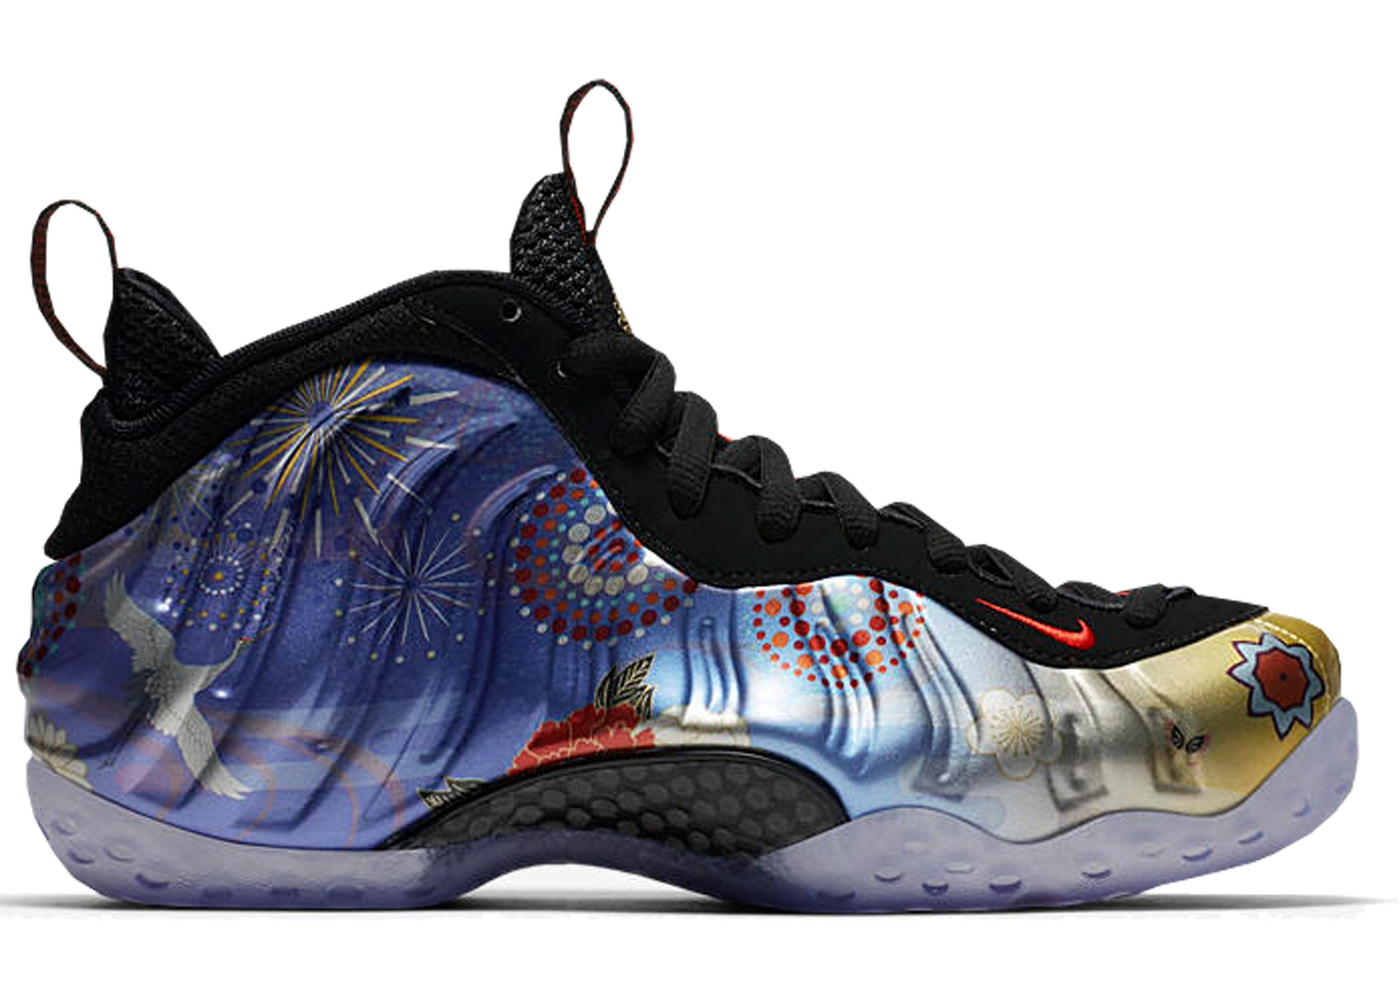 quality design 930a4 fe599 Nike Foamposite Shoes - Price Premium